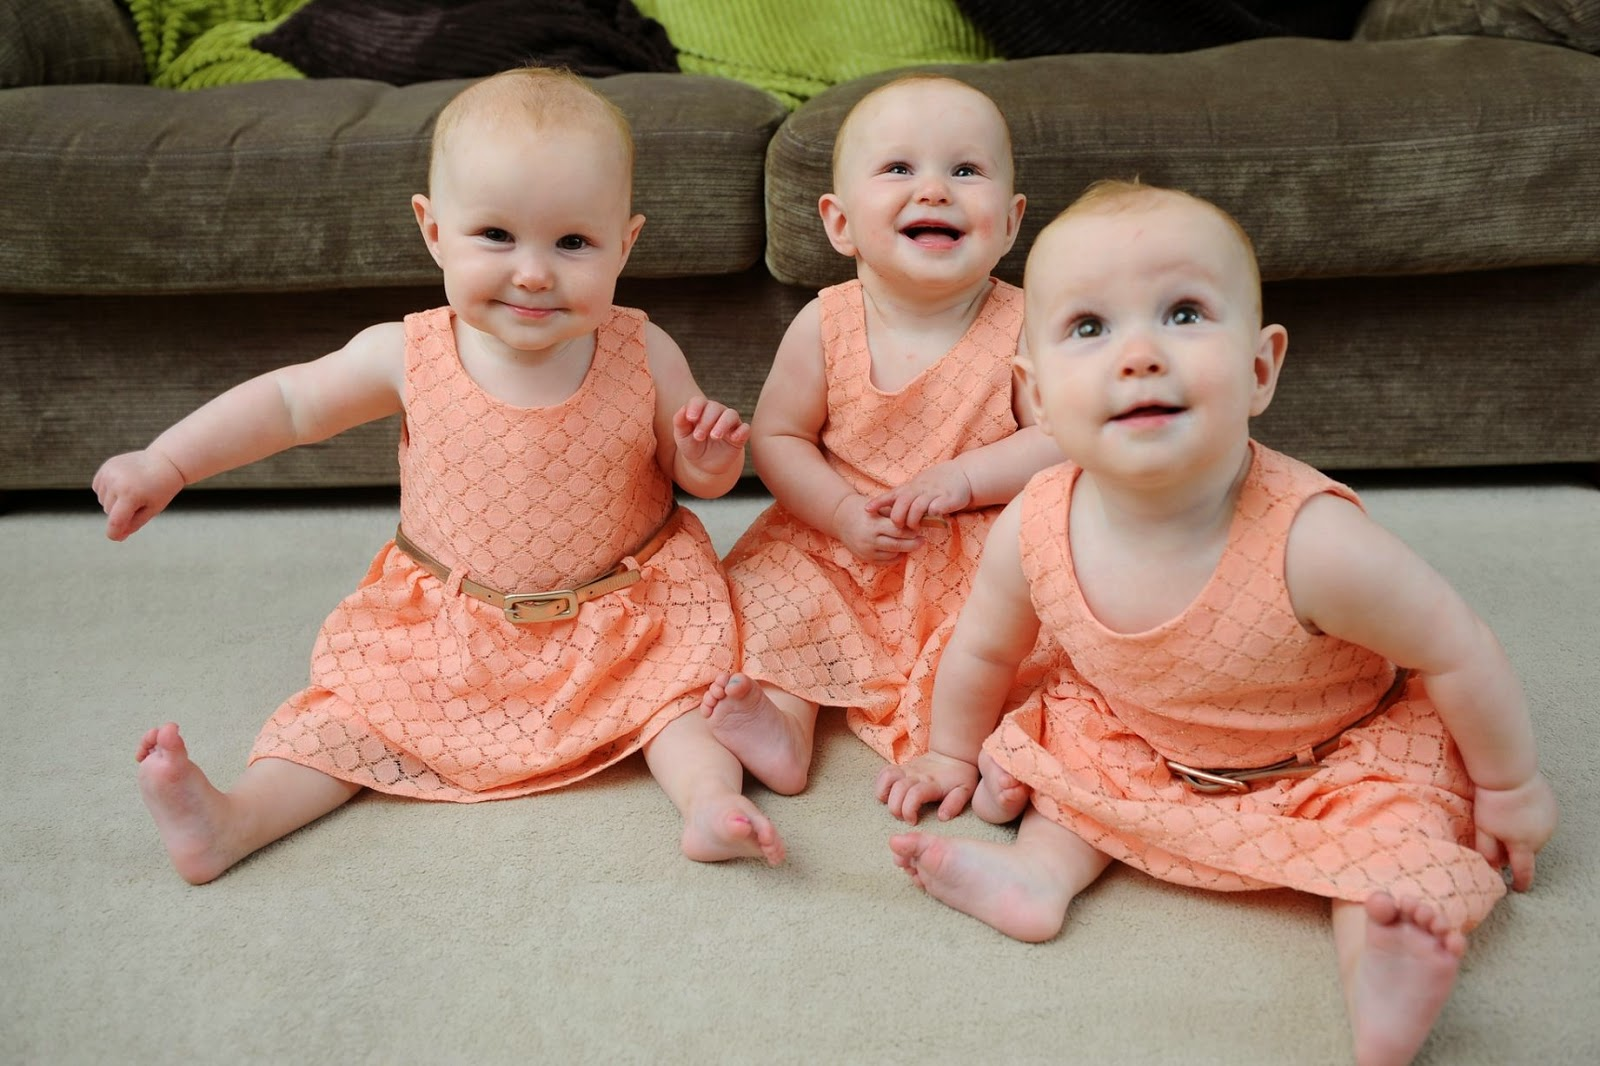 identical triplet babies - photo #2